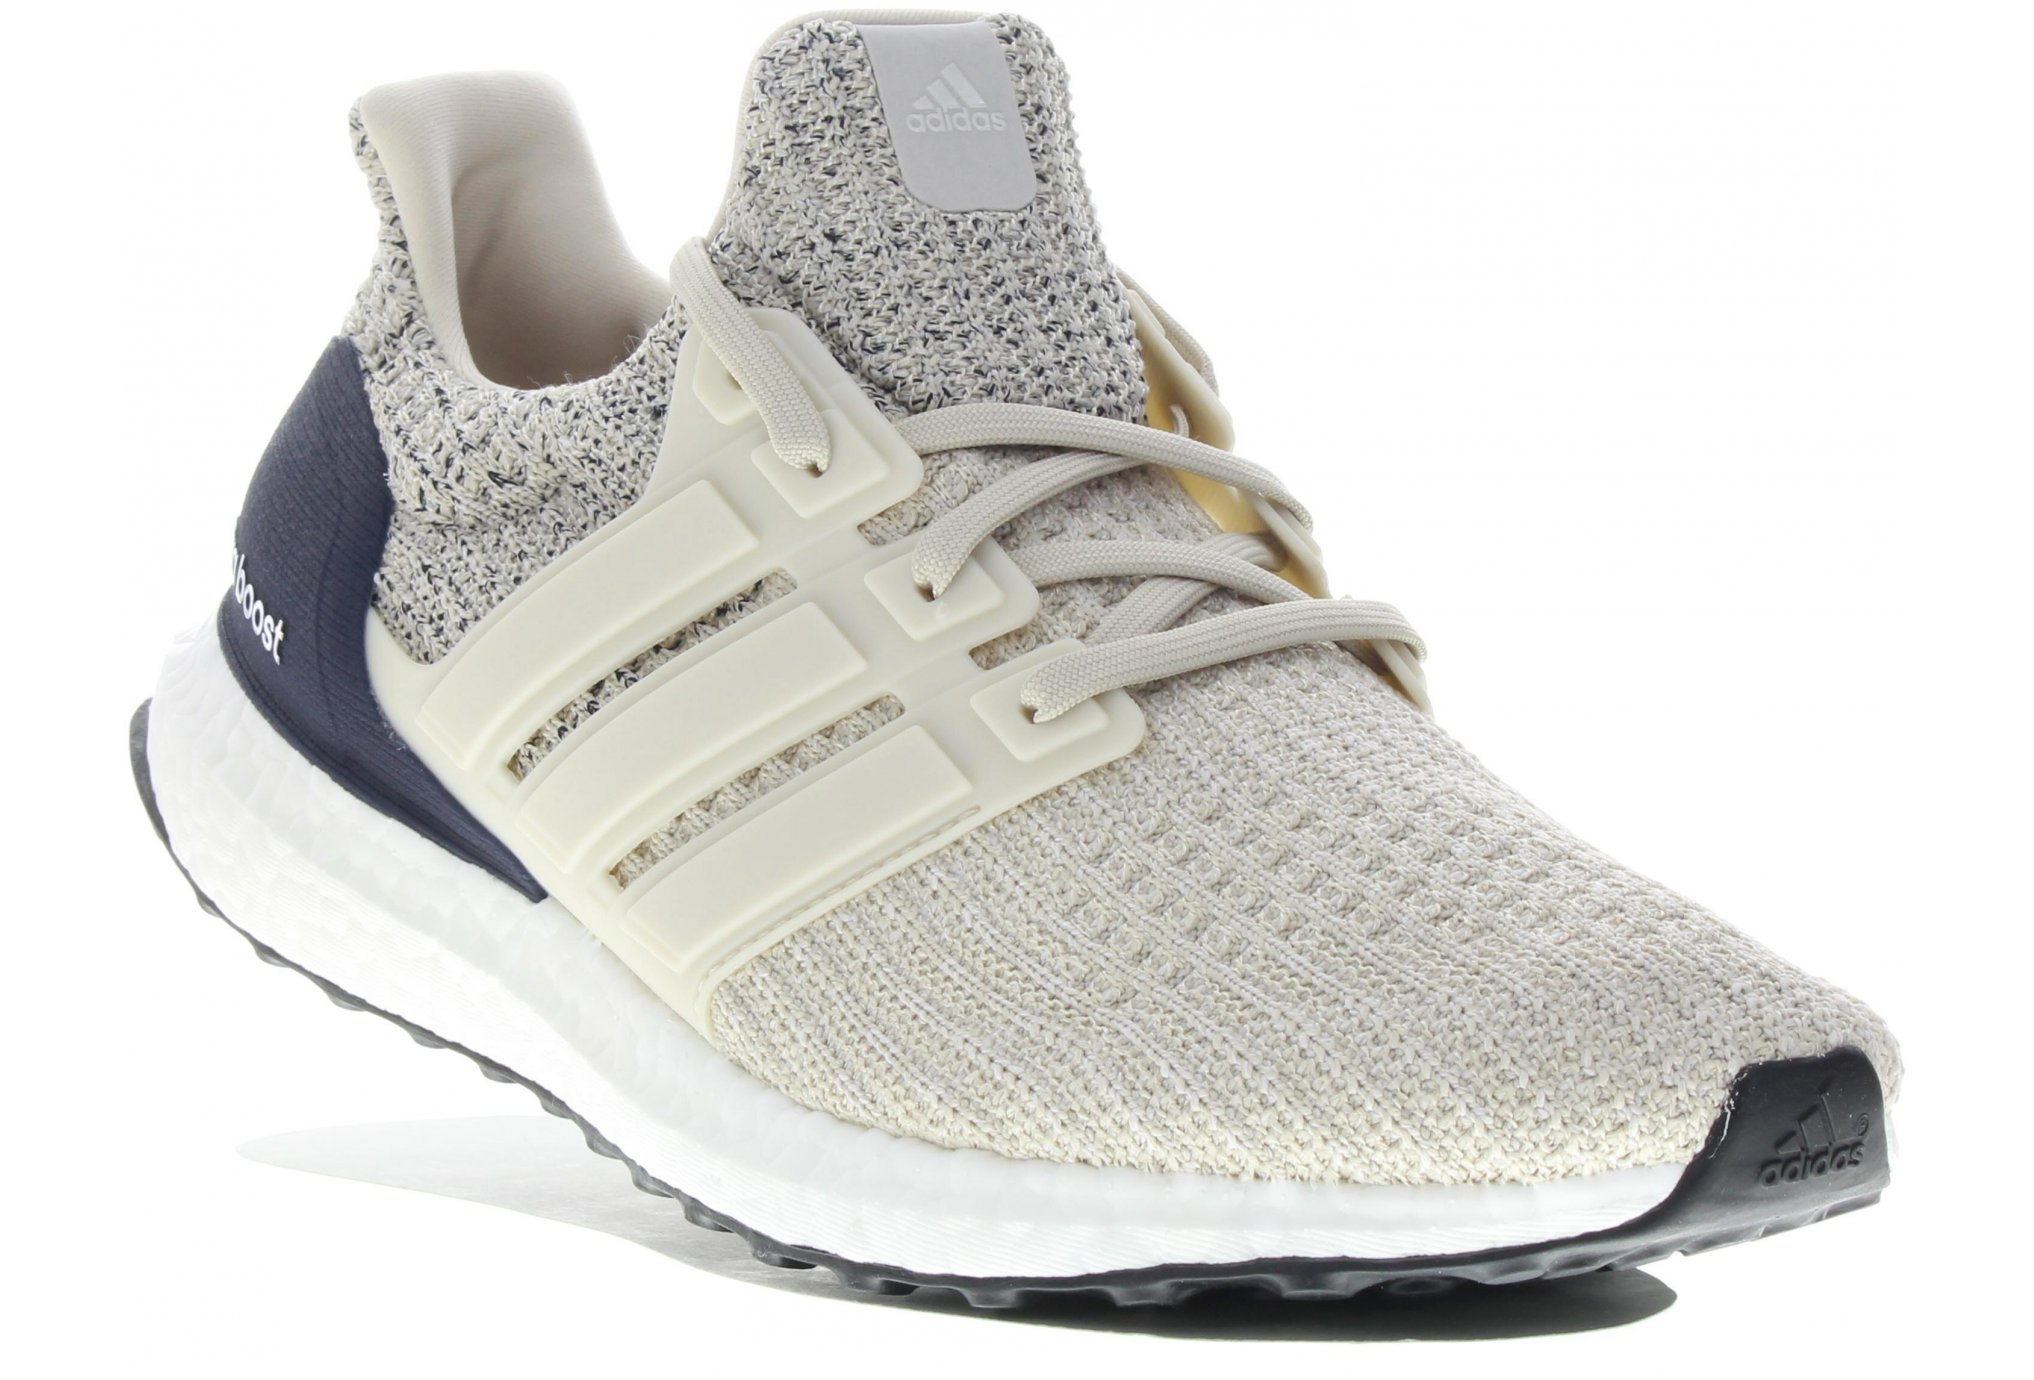 adidas UltraBOOST Chaussures homme